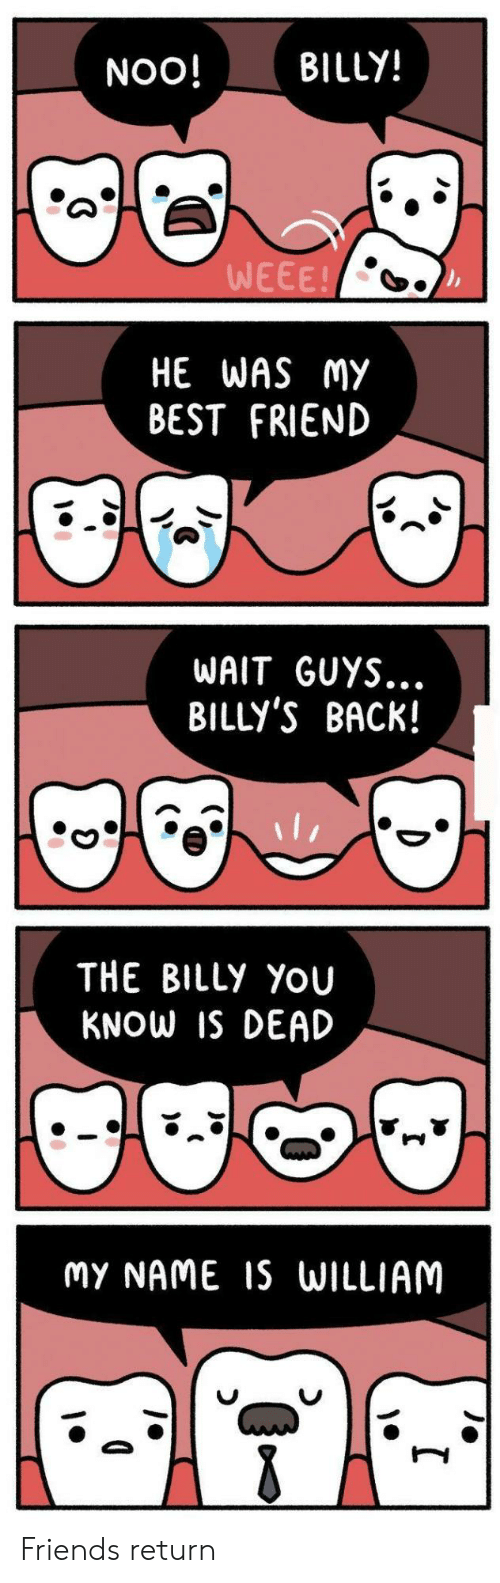 Best Friend, Best, and Back: NOO! BILLY!  WEEE!  HE WAS MY  BEST FRIEND  WAIT GUYS...  BILLY'S BACK!  THE BILLy YoU  KNOW IS DEAD  MY NAME IS WILLIAM Friends return